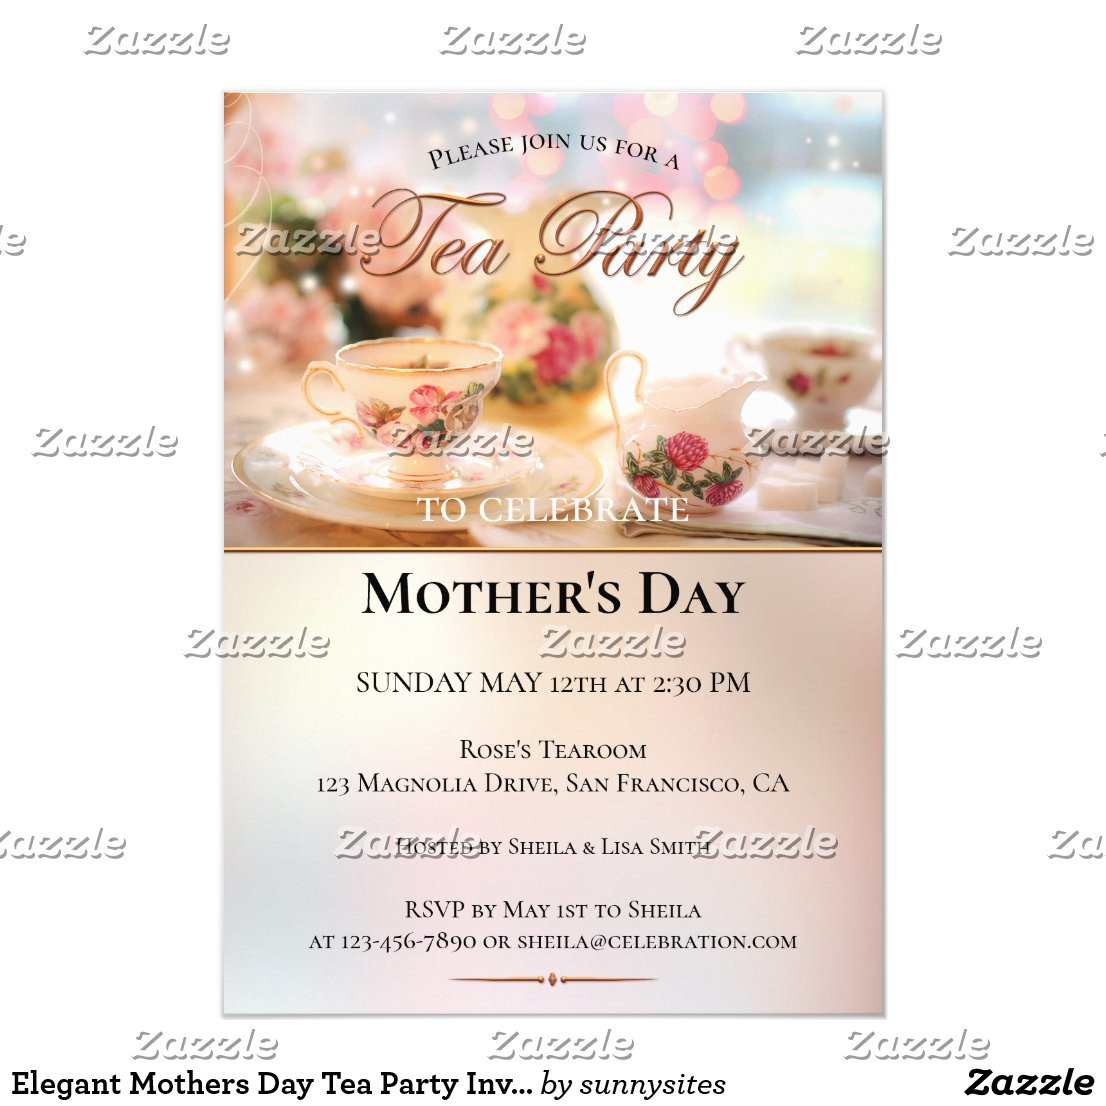 Elegant Mothers Day Tea Party Invitation